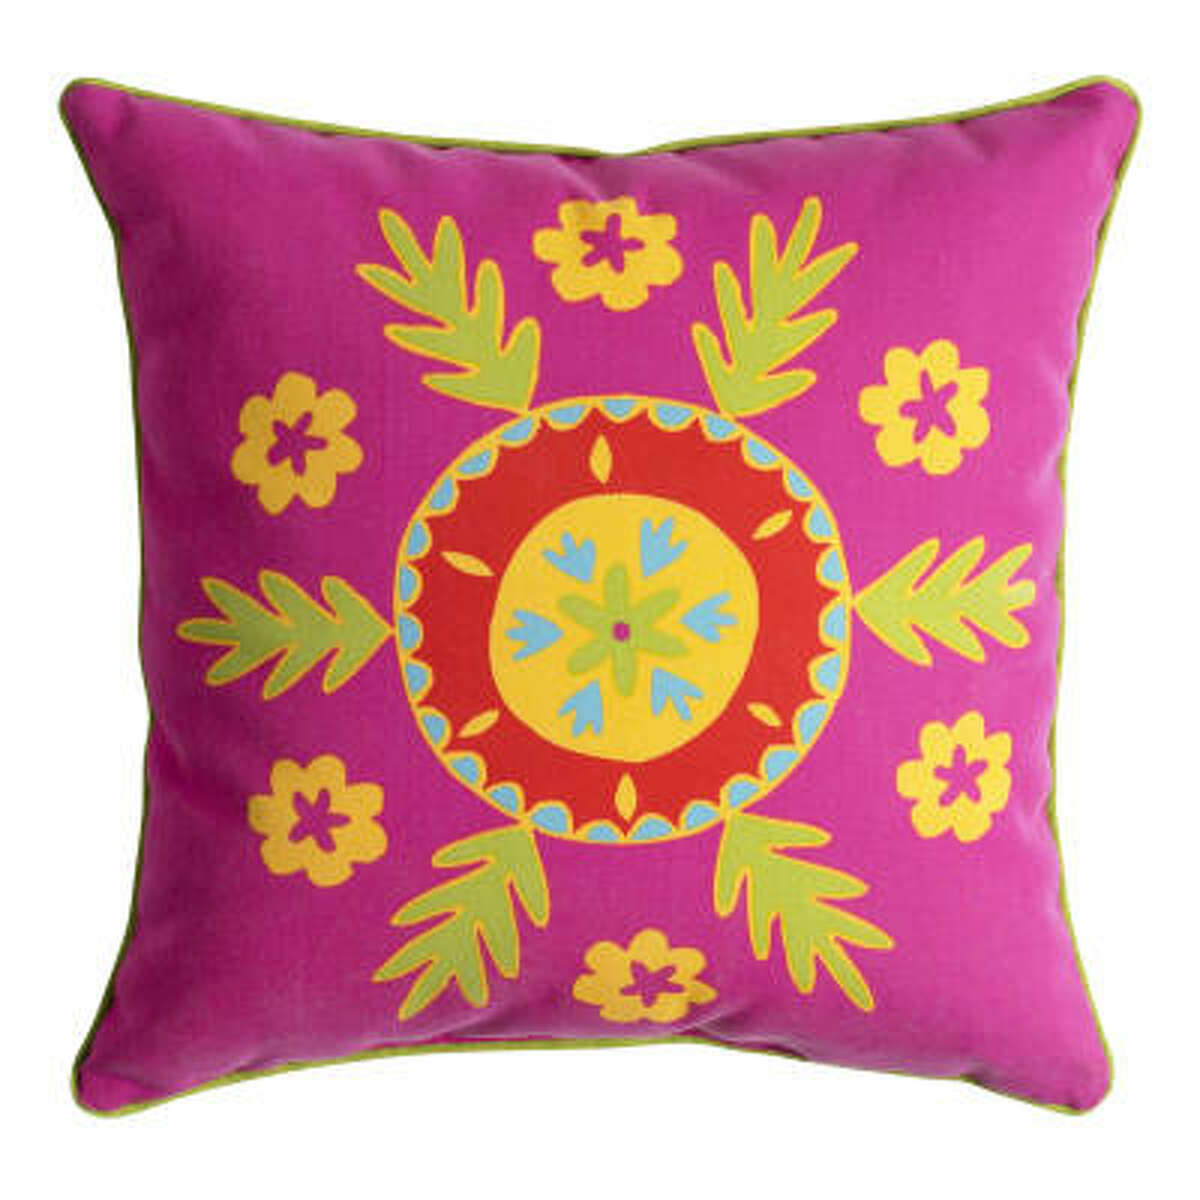 The Suzani outdoor pillow measures 18 inches square, $16.95, Pier 1 Imports